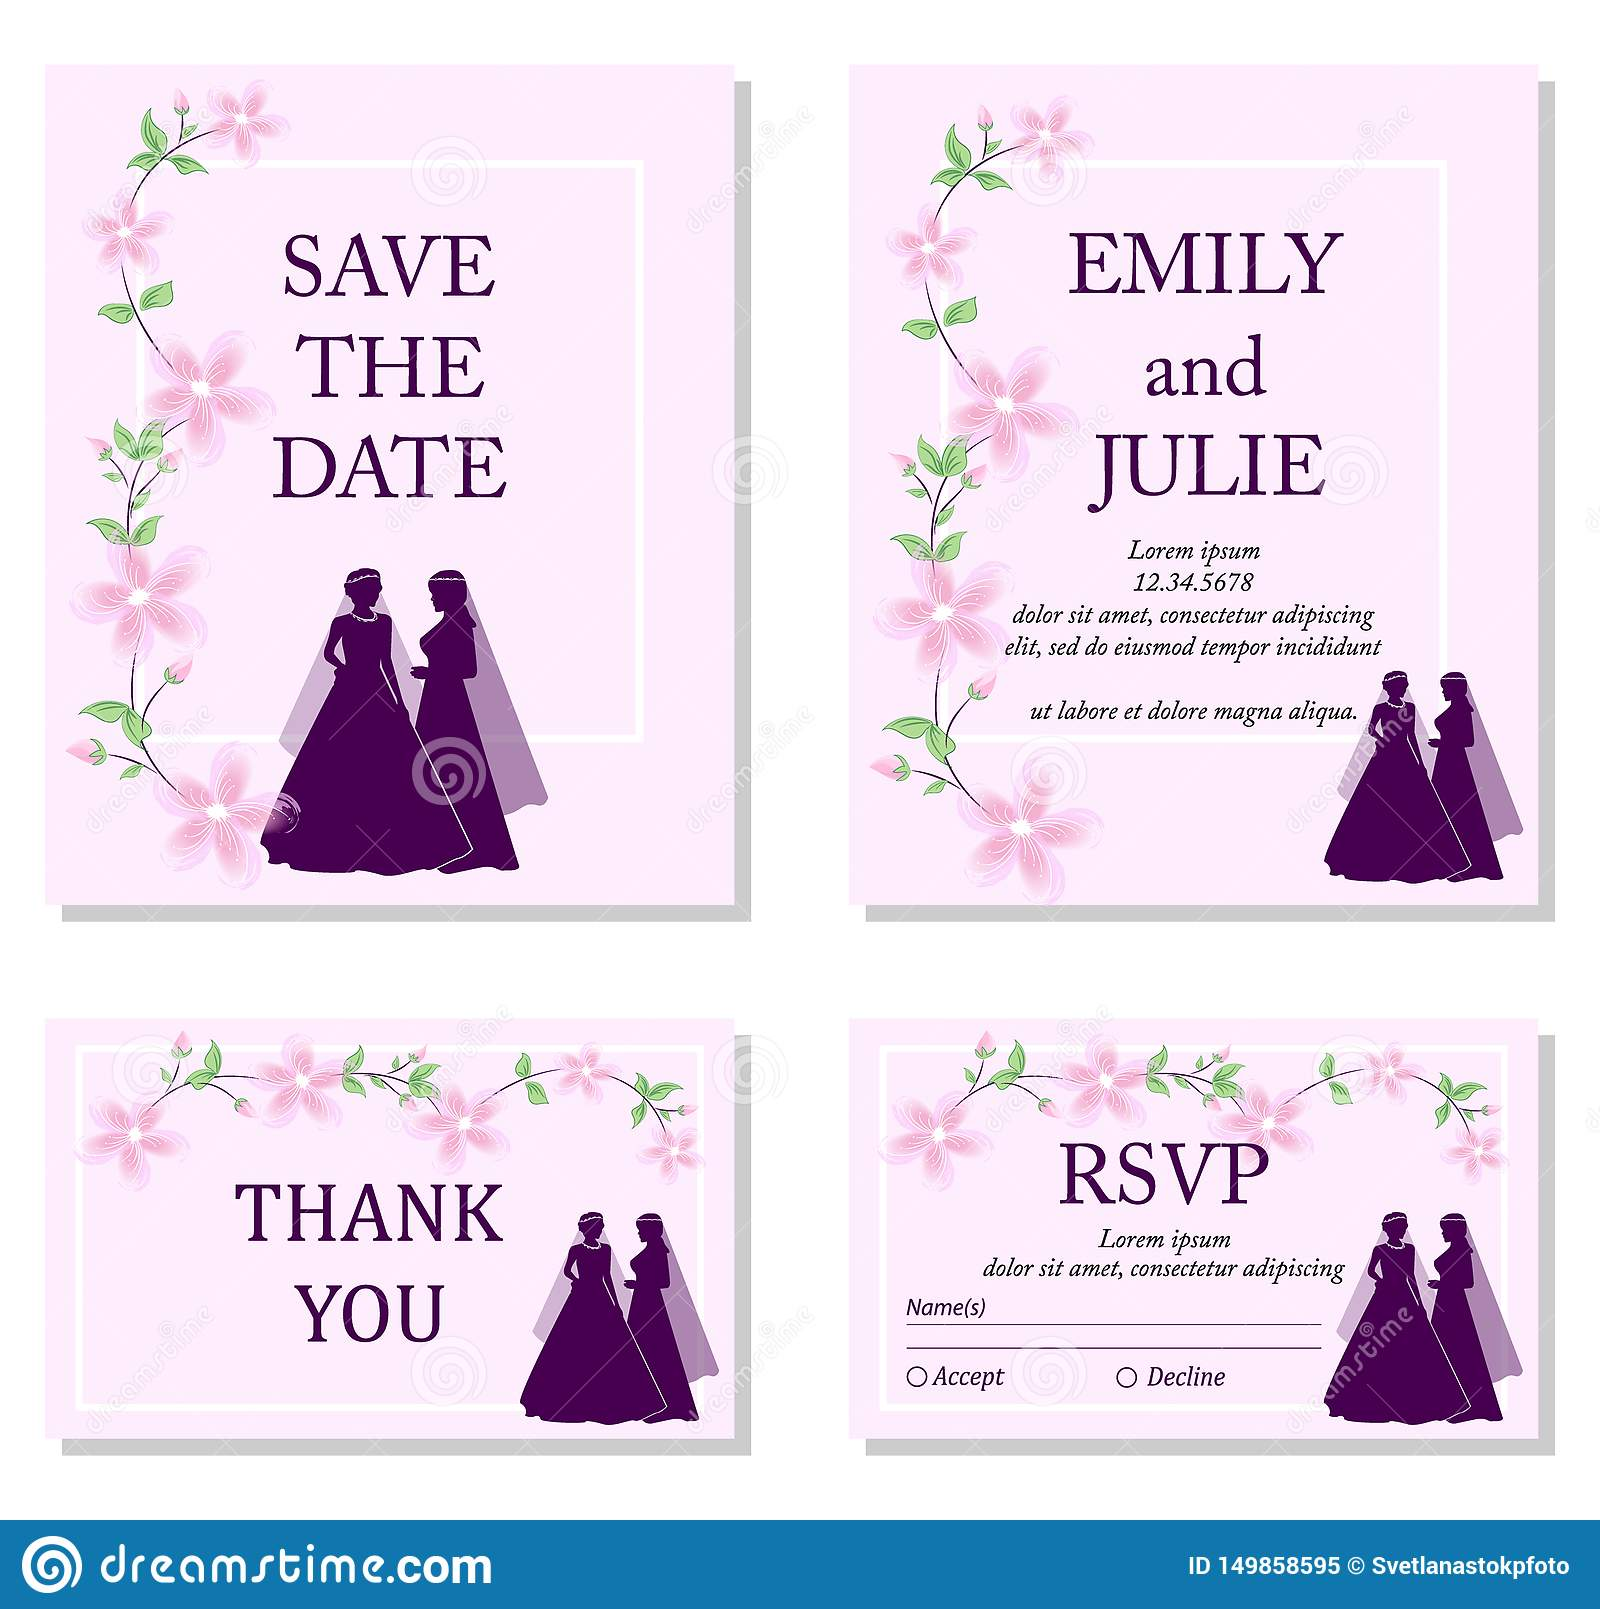 How to address save the dates same sex